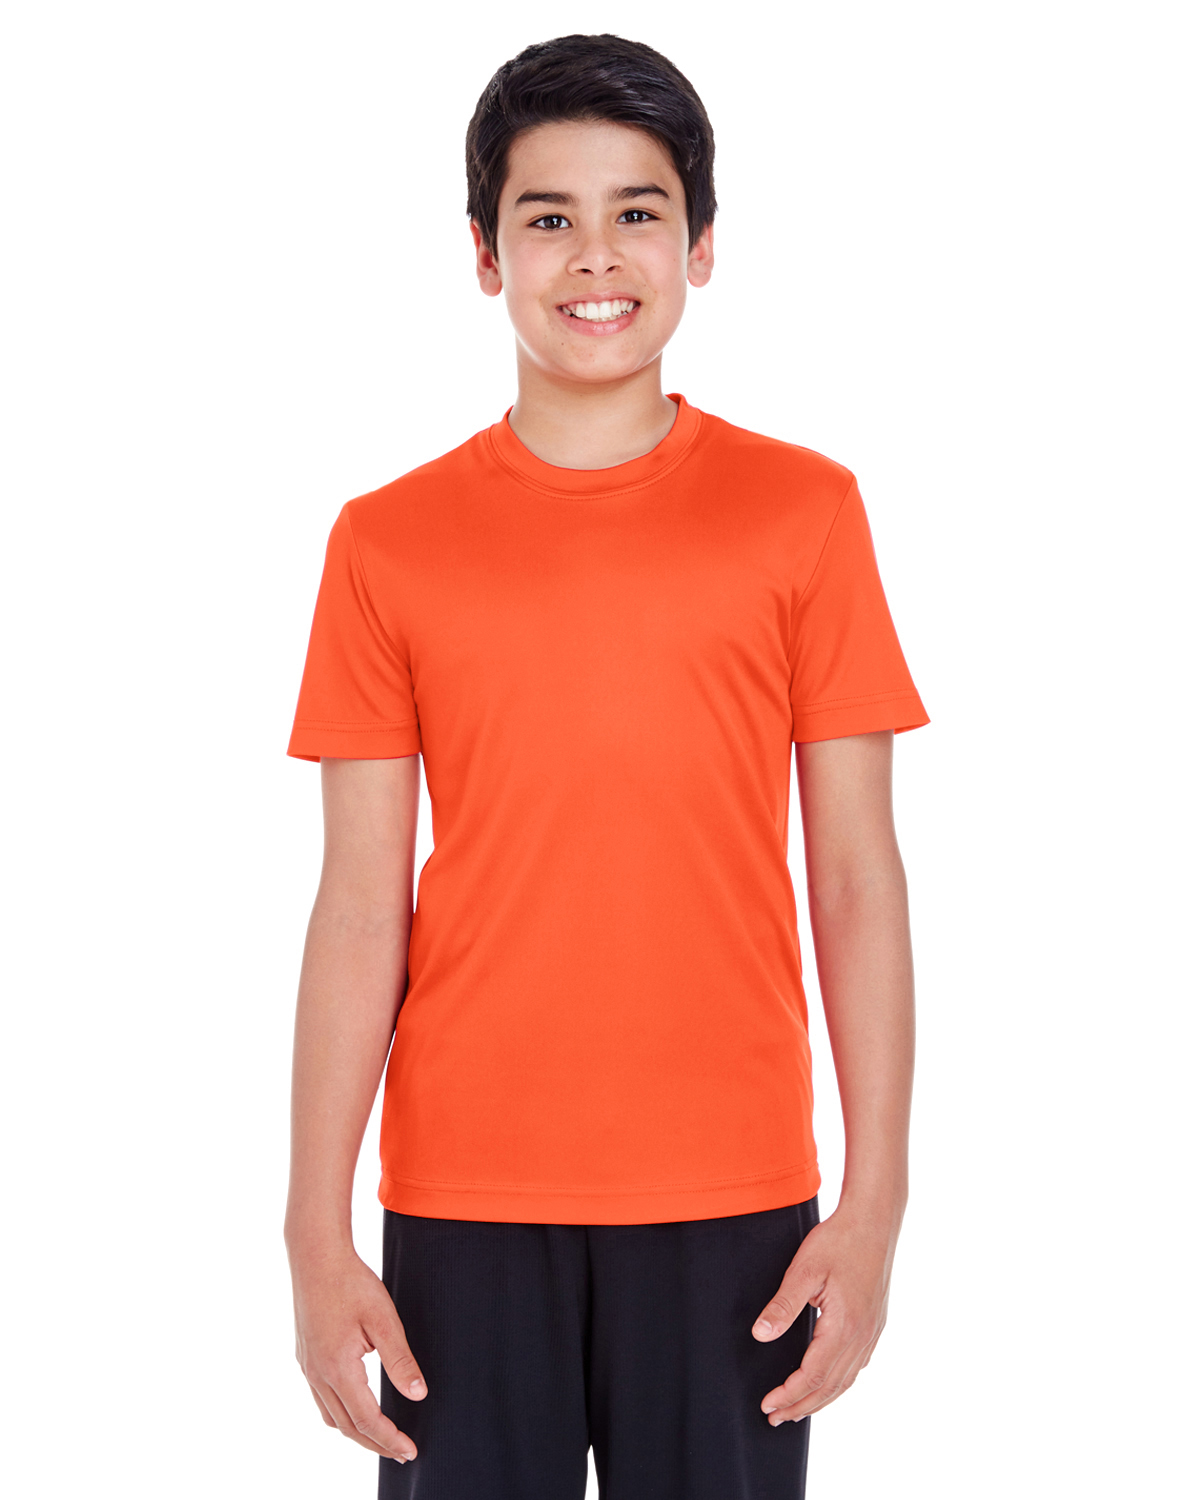 Youth Zone Performance Tee